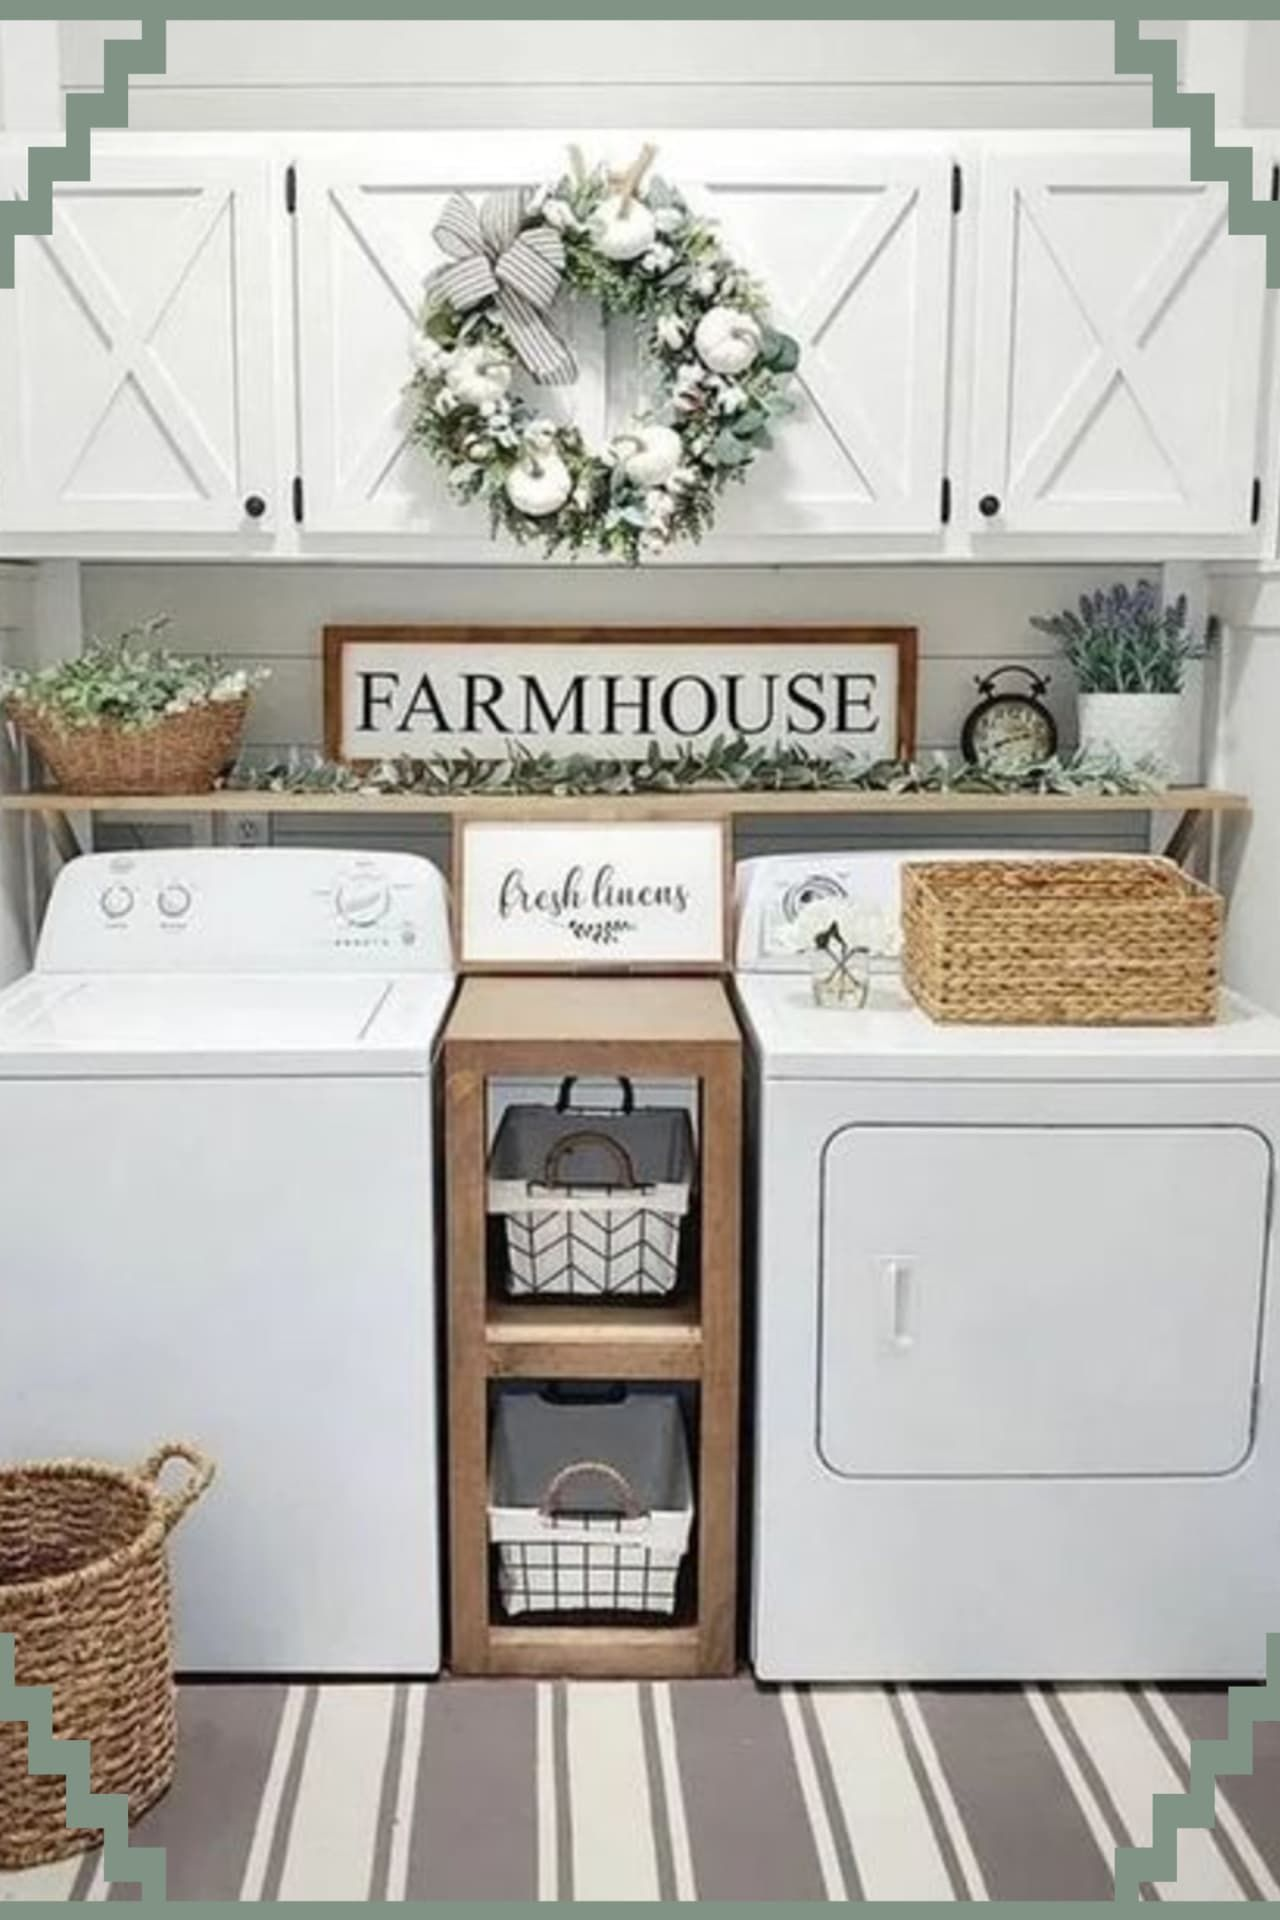 Small Laundry Room Ideas - Space Saving Ideas for Tiny Laundry Rooms (Creative and Simple DIY)